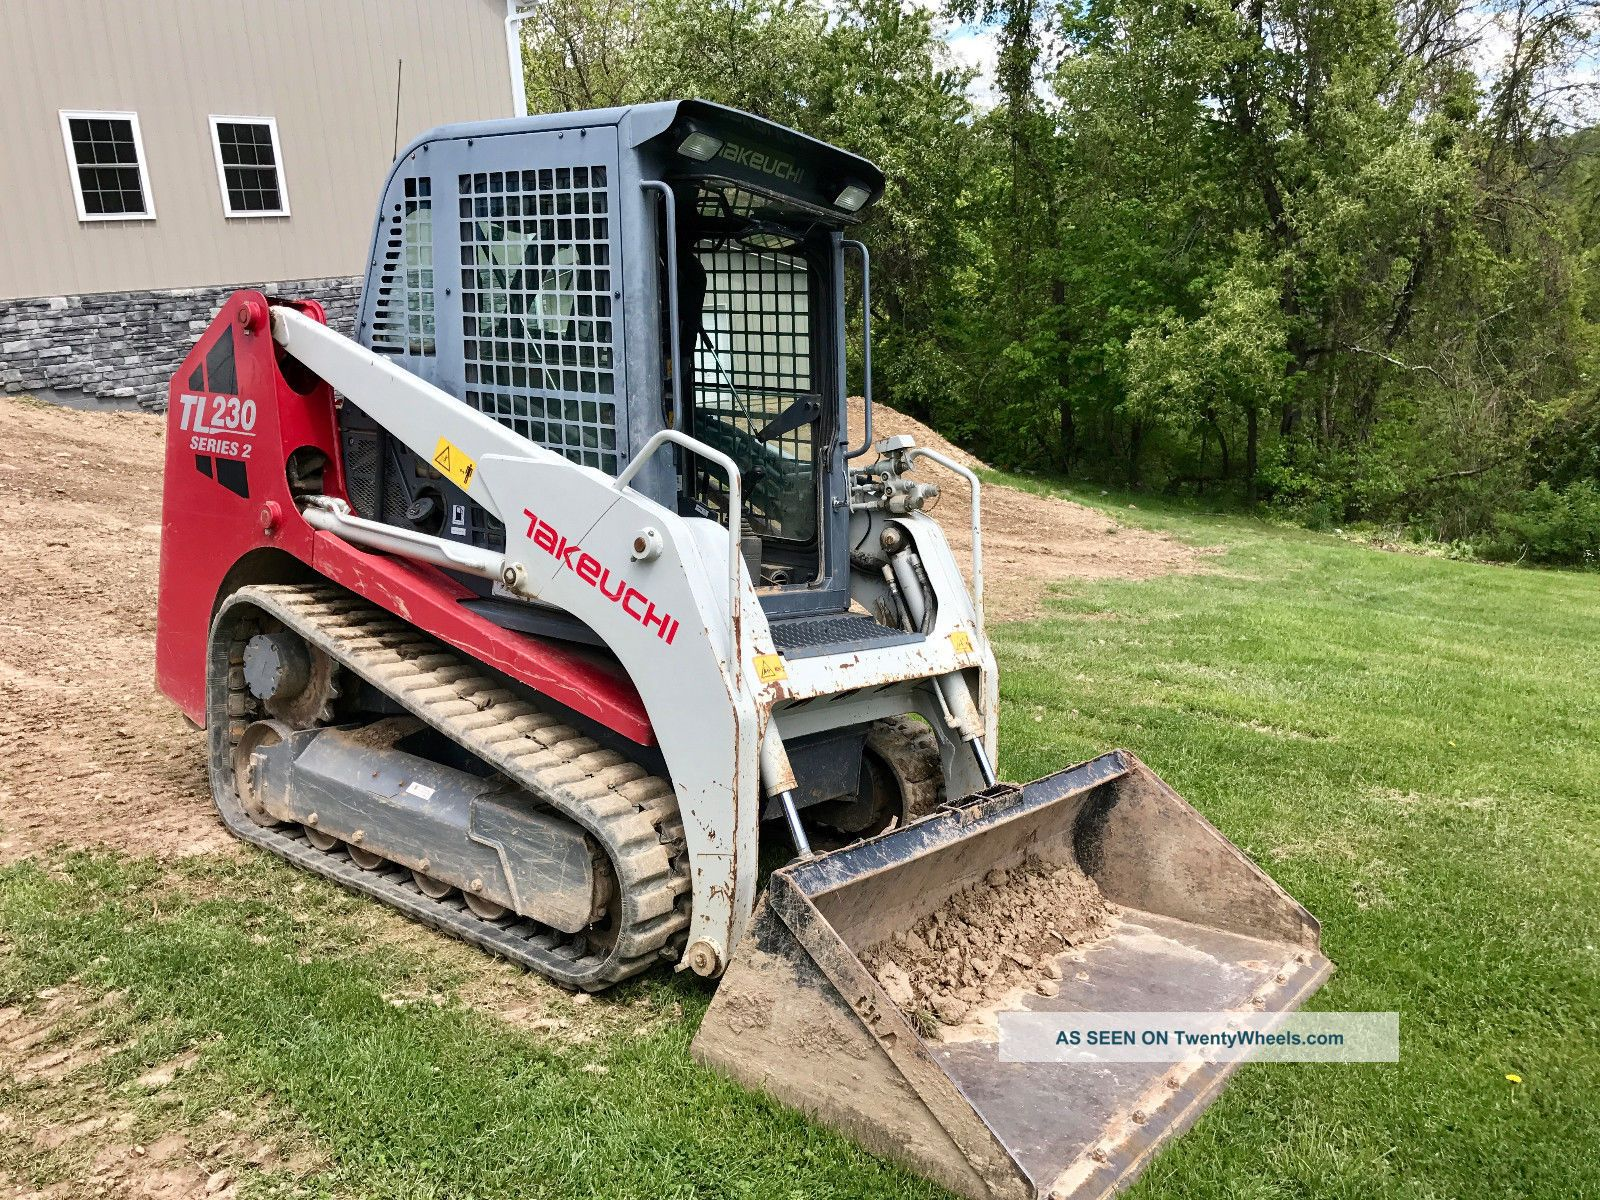 2011 Takeuchi Tl230 Series 2 Skid Steer Kubota Diesel Heat A/c Radio Skid Steer Loaders photo